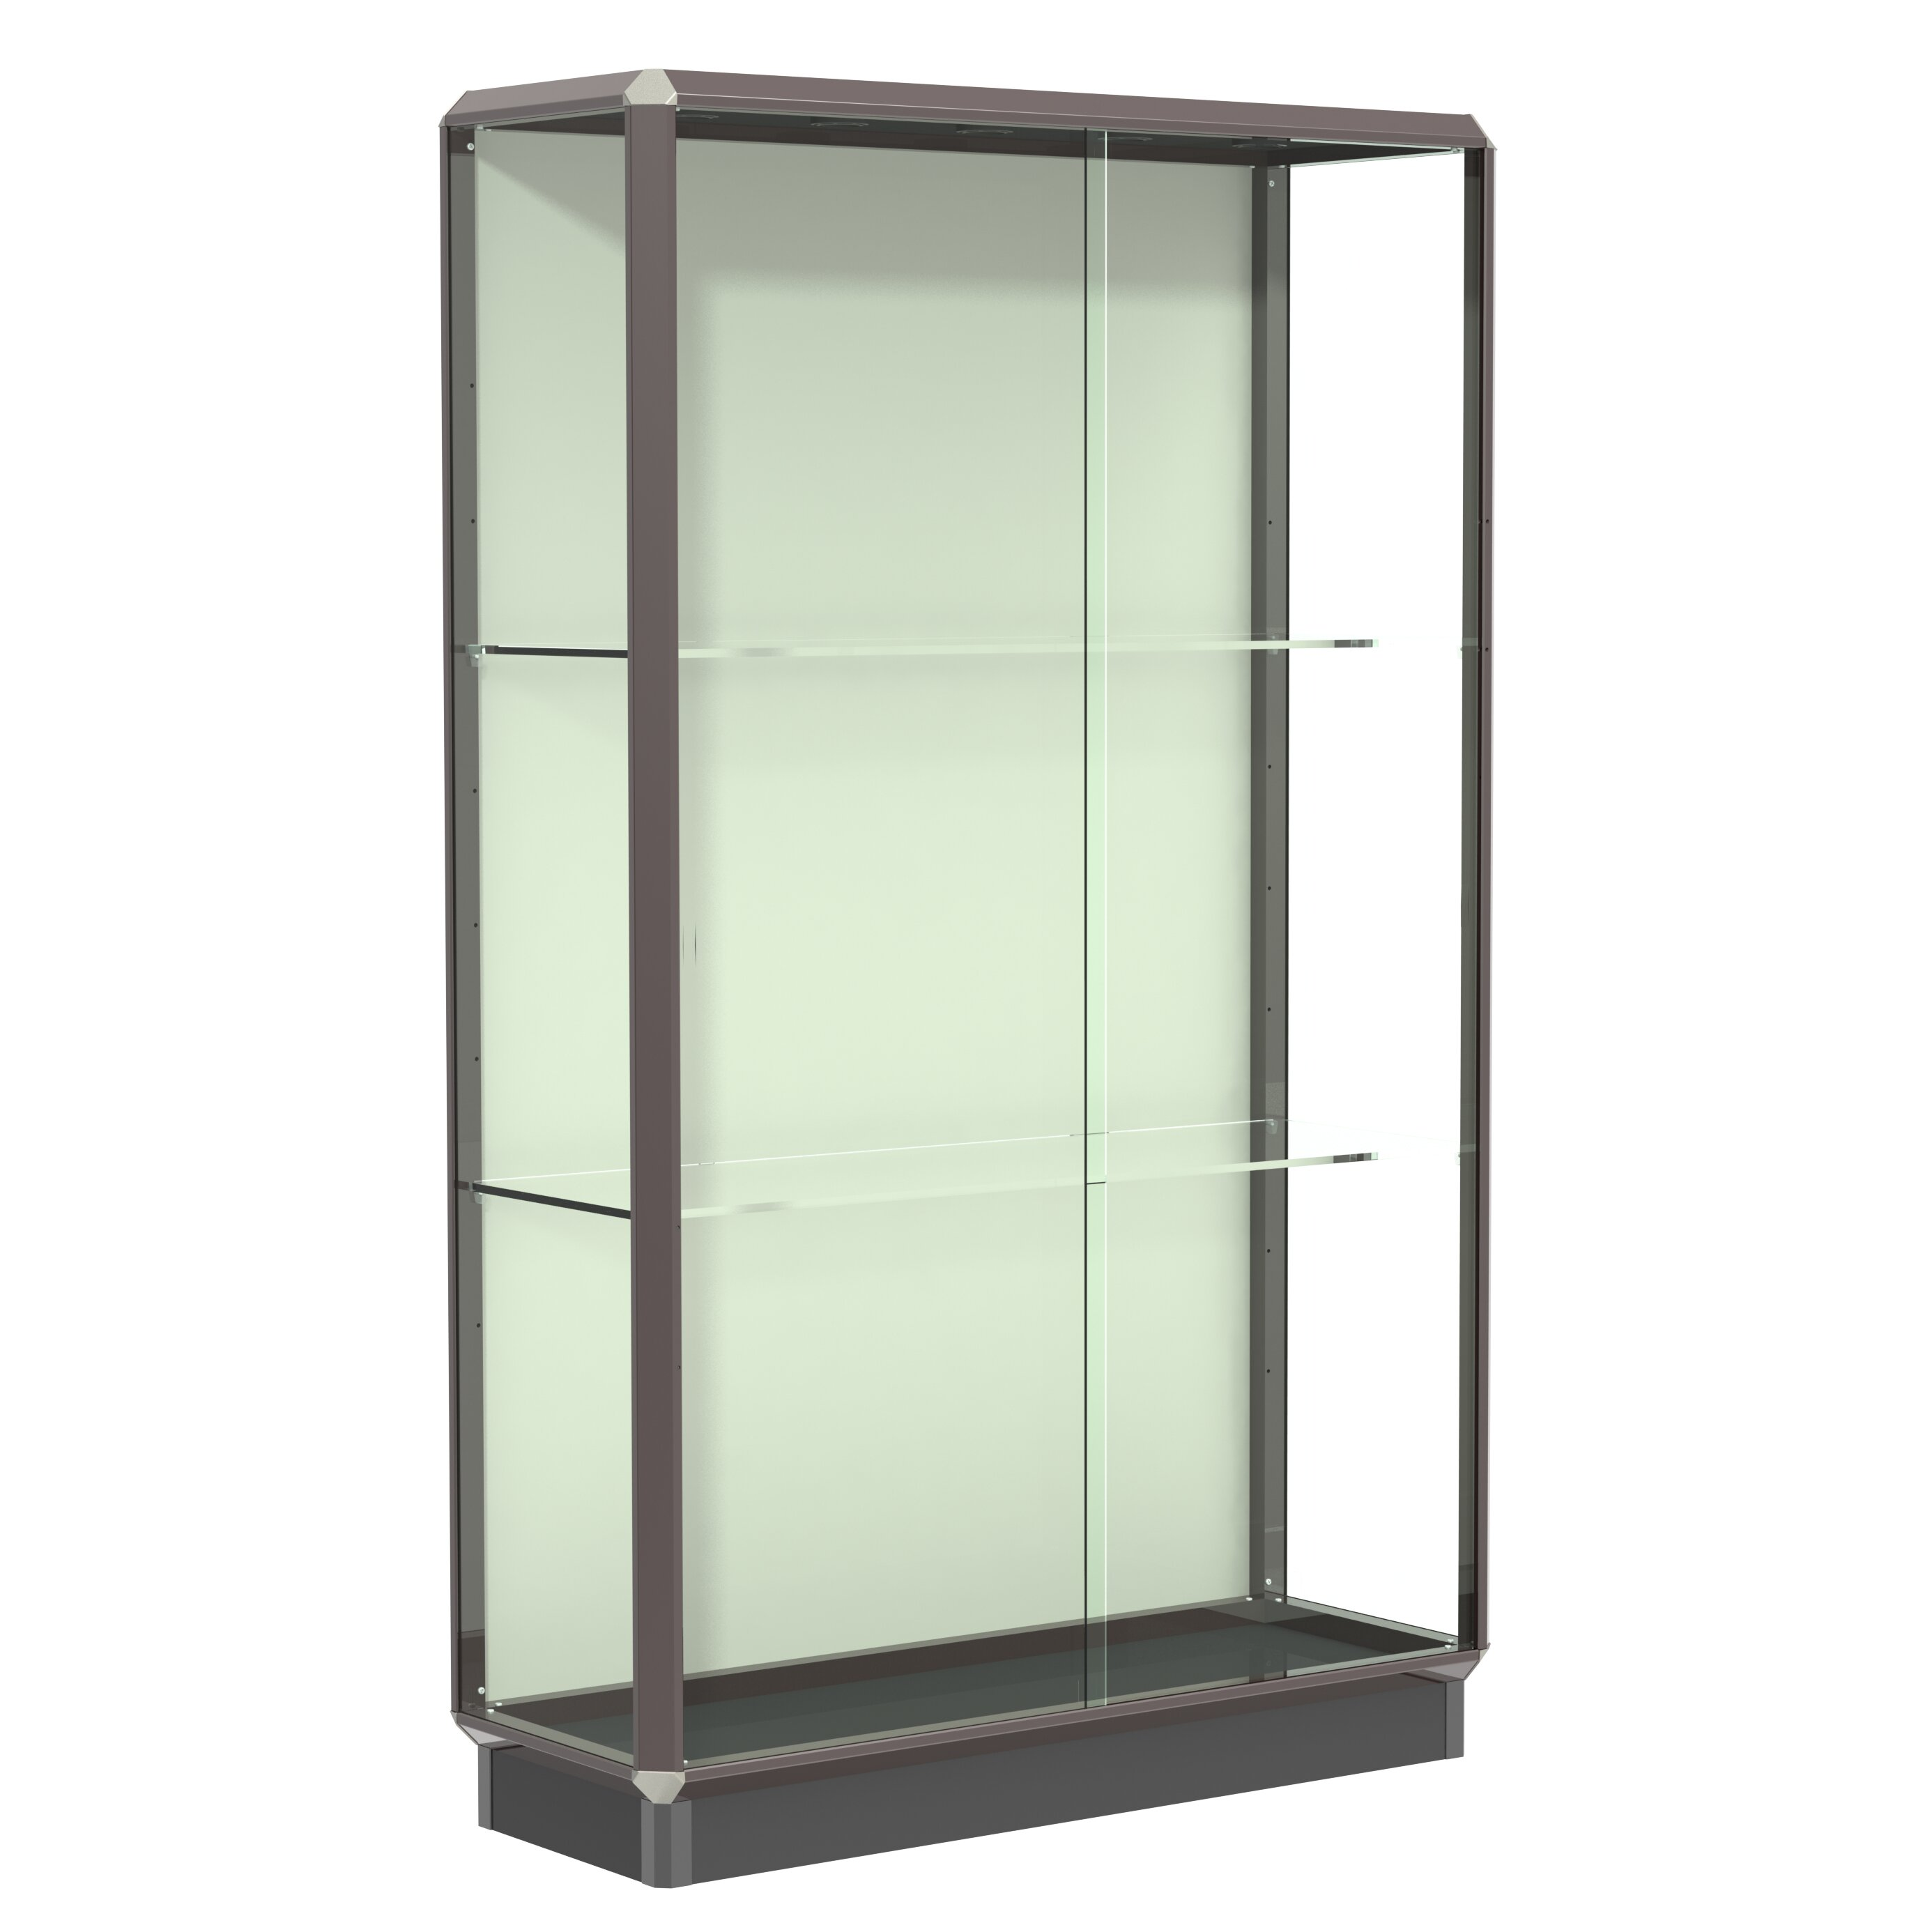 waddell prominence series lighted floor display case. Black Bedroom Furniture Sets. Home Design Ideas